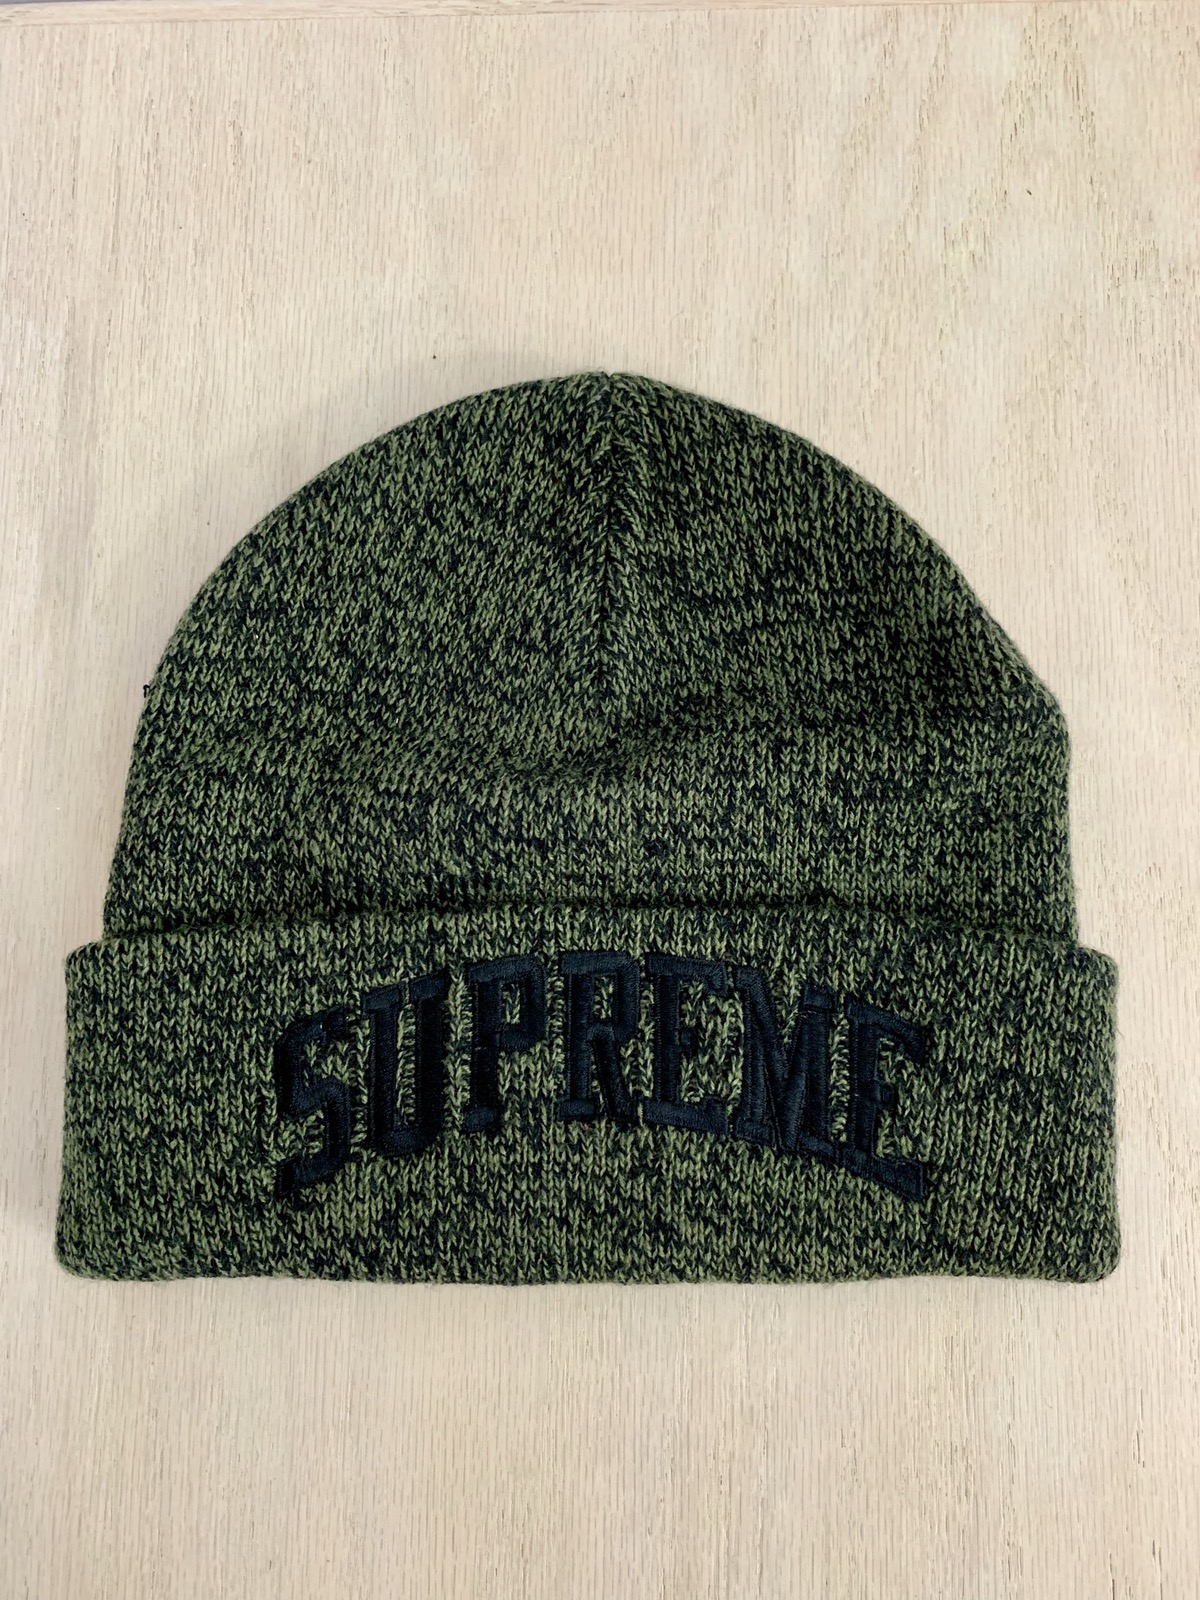 1c7351bfe92 Supreme FW16 Melange Beanie in Black Size one size - Hats for Sale - Grailed